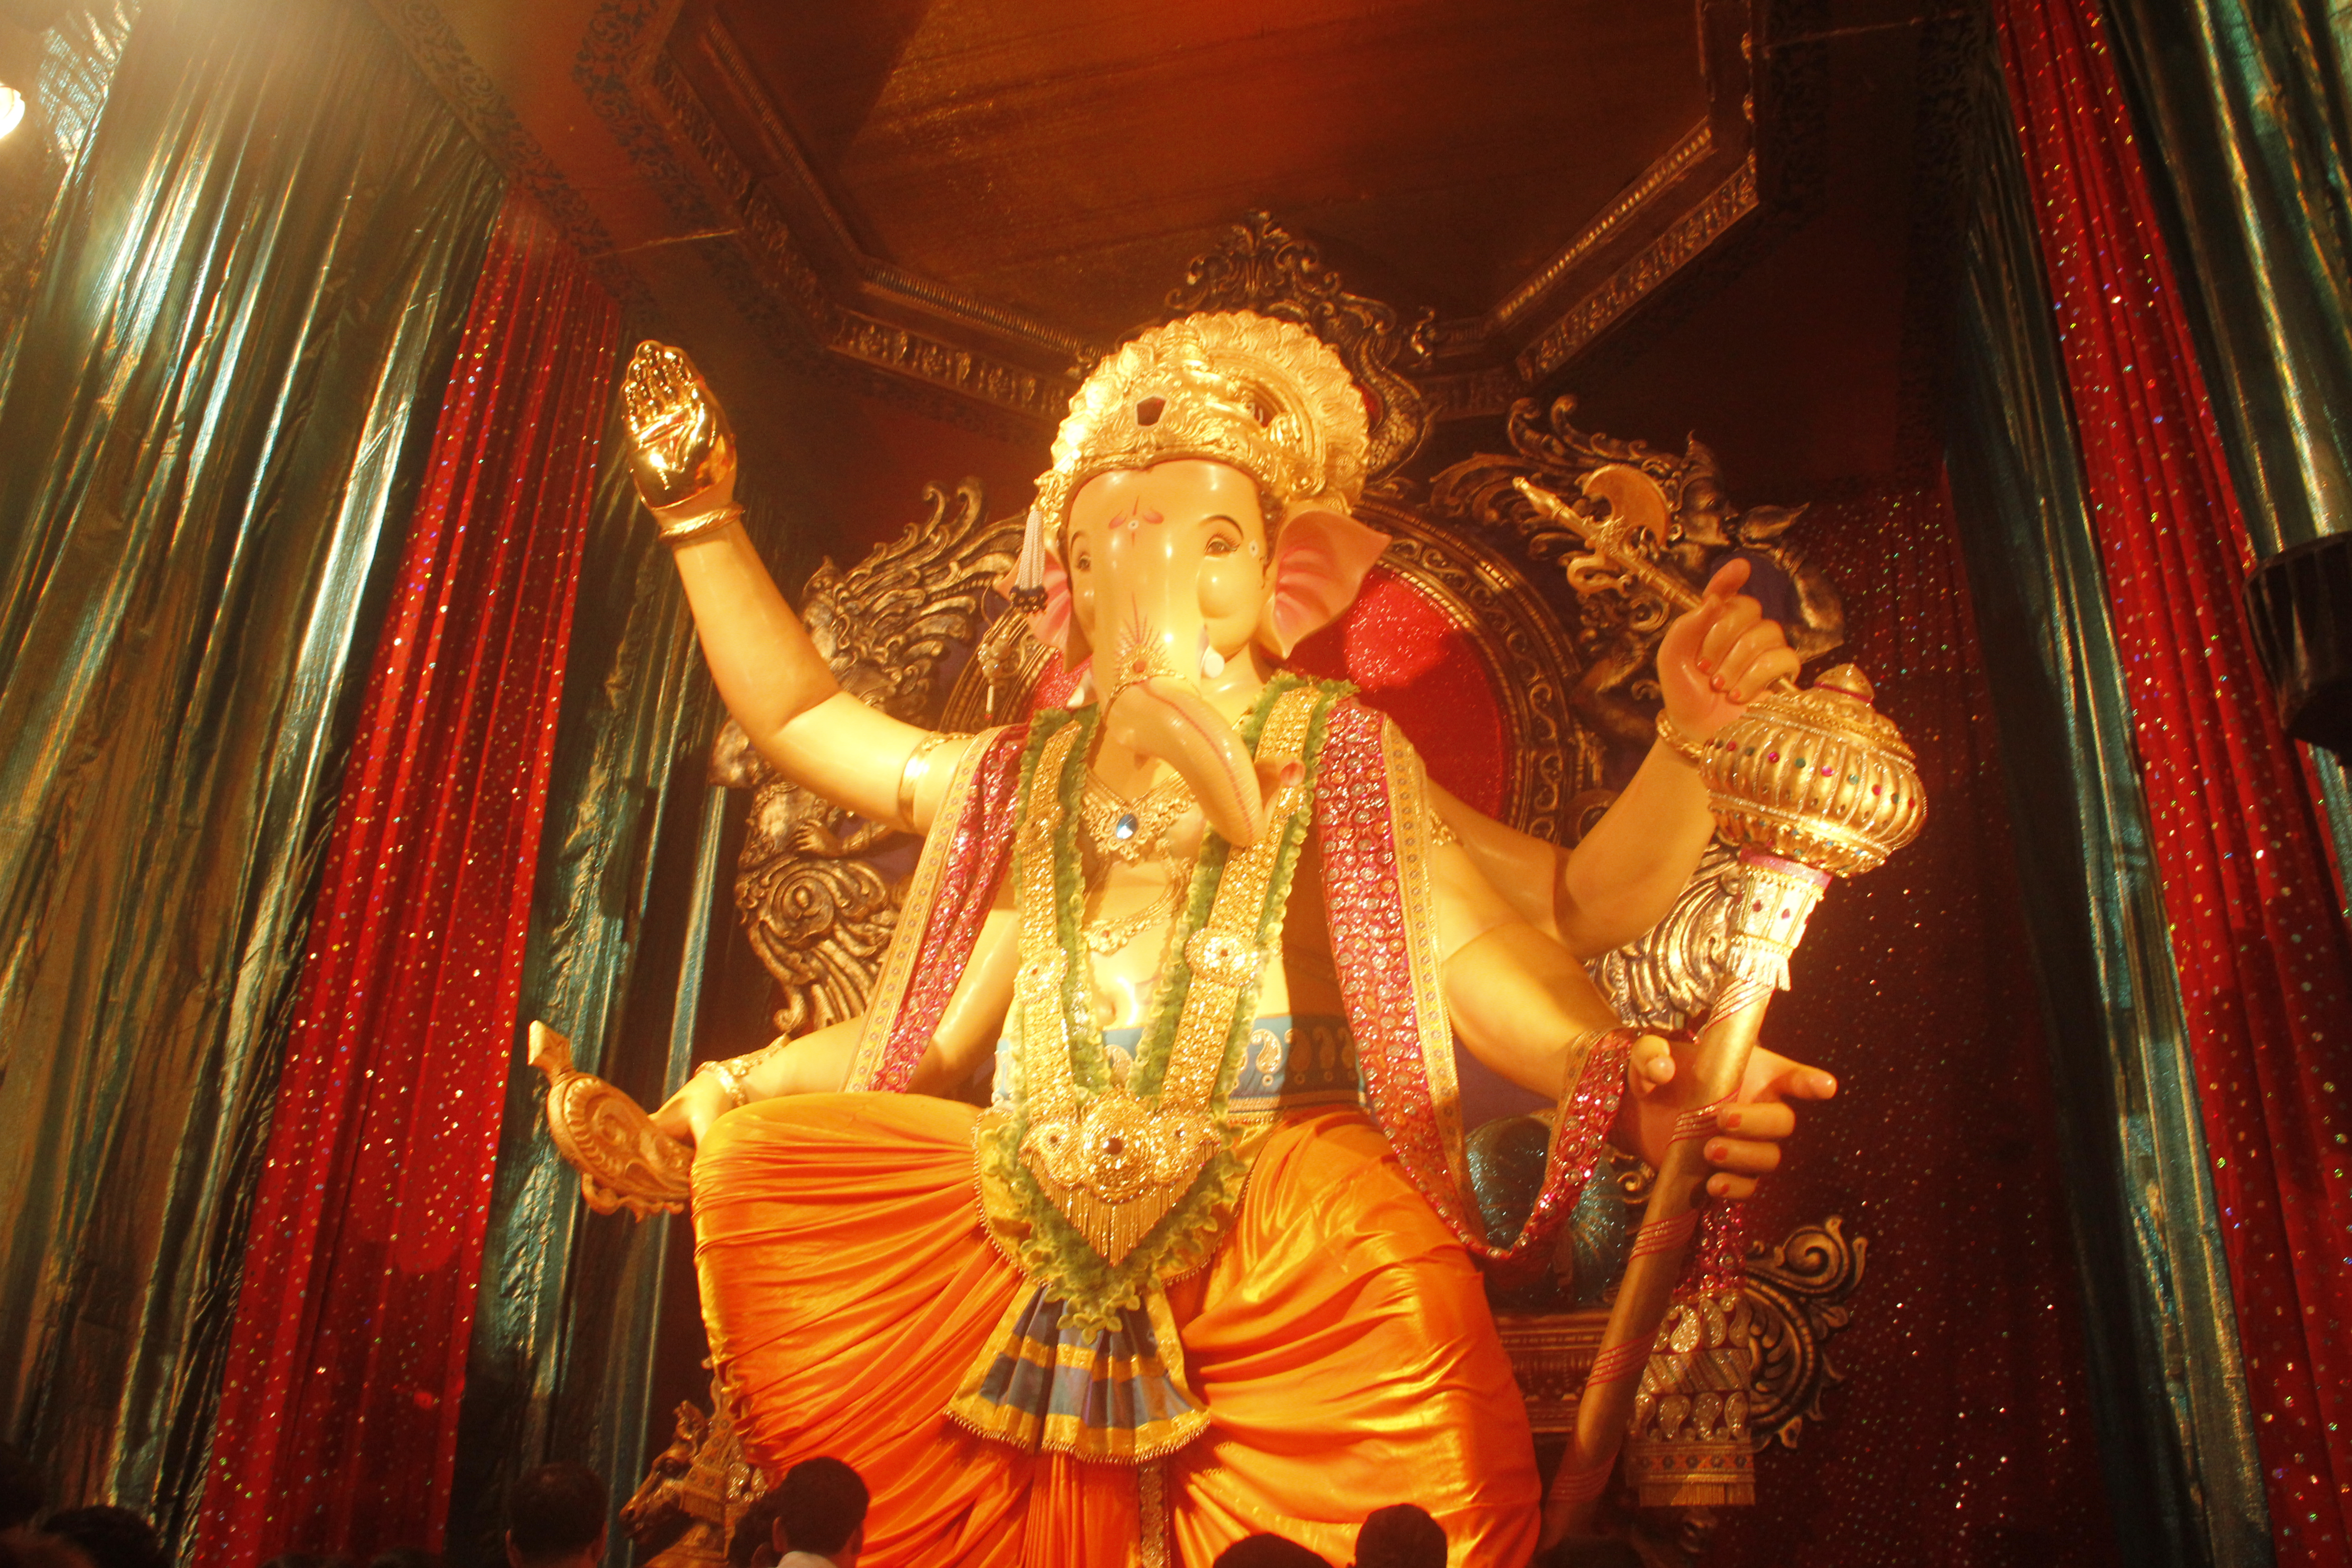 Ganesh Festival In Bengaluru My Lord Ganesha - Indias 9 coolest cultural festivals